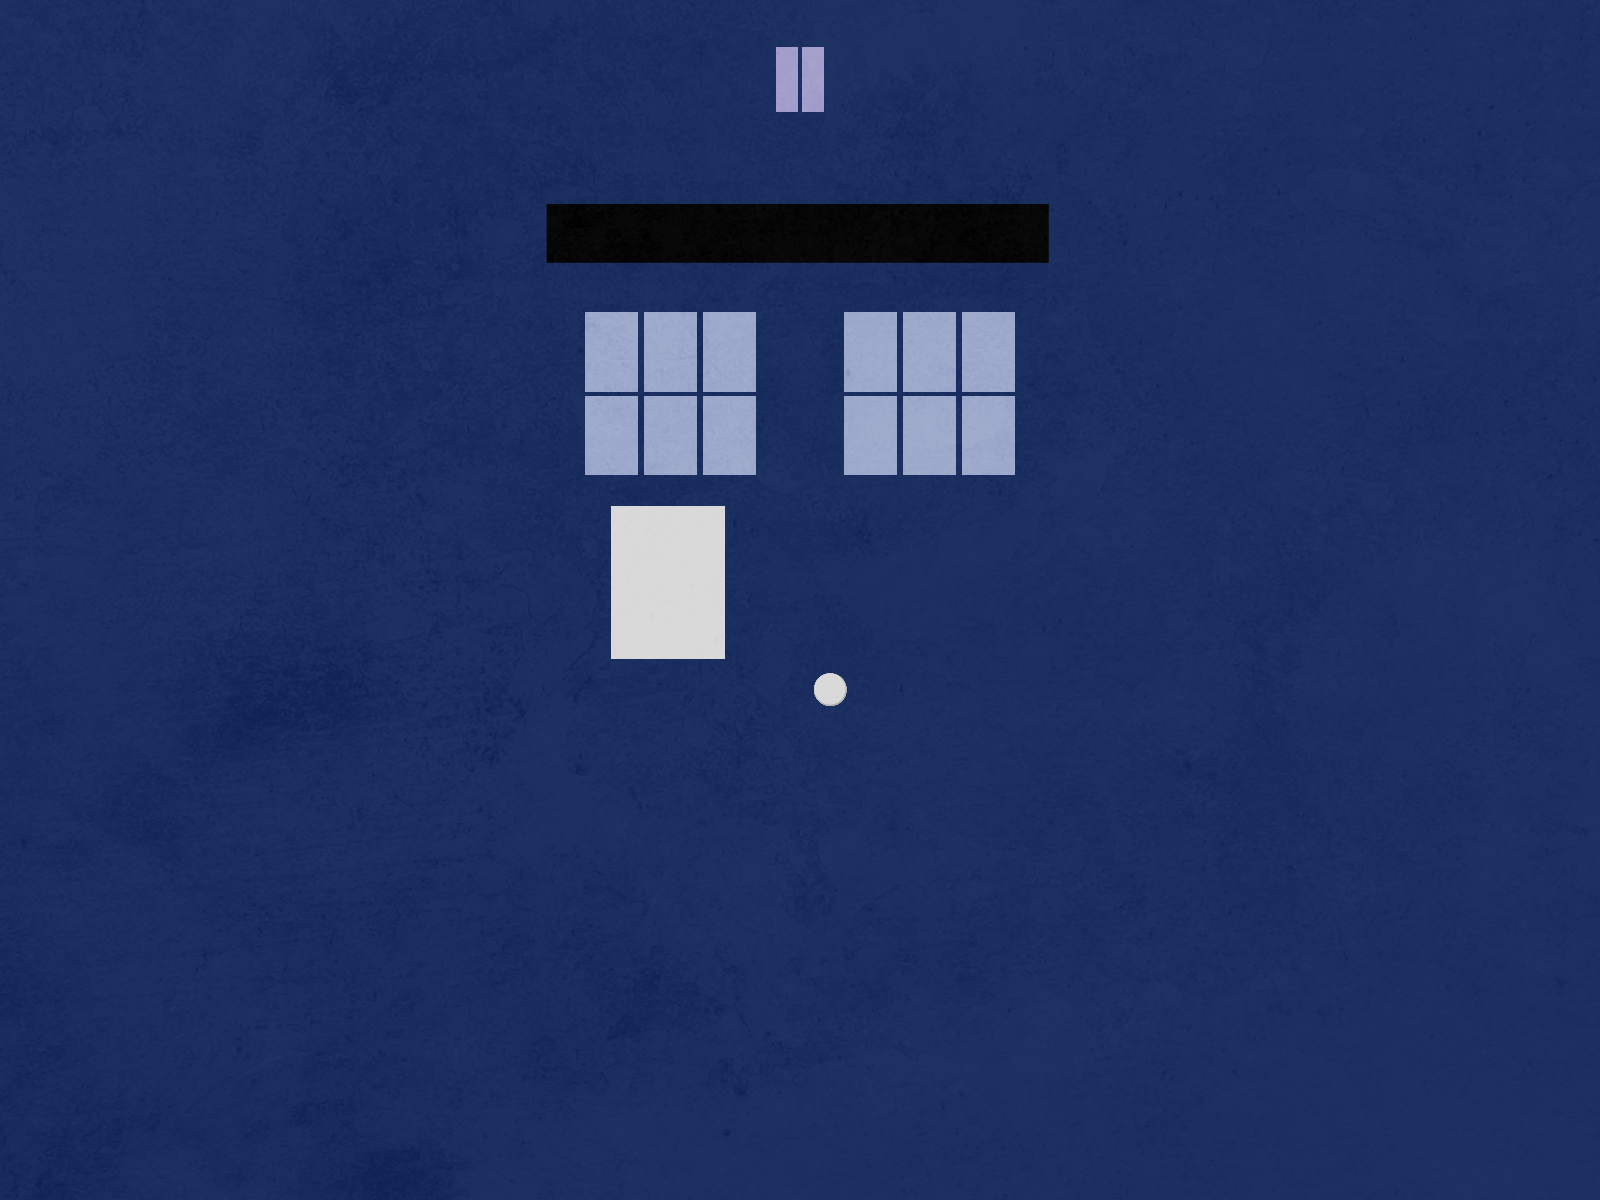 Doctor who wallpaper minimalist for Minimalist house wallpaper